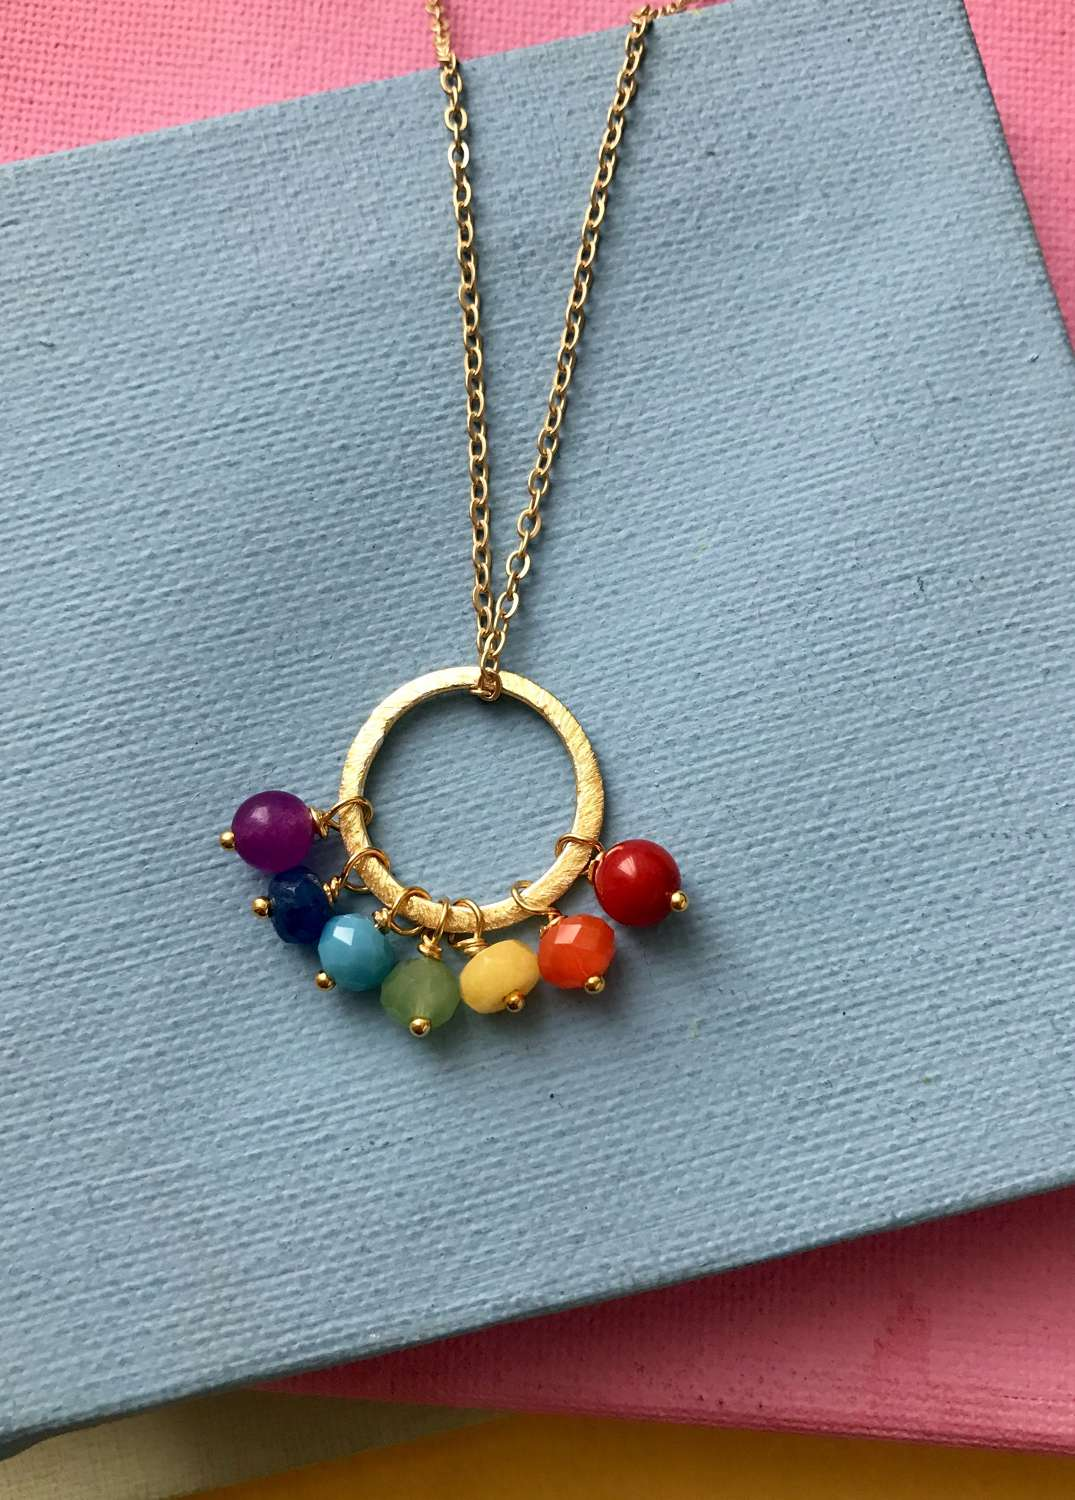 Rainbow Song necklace